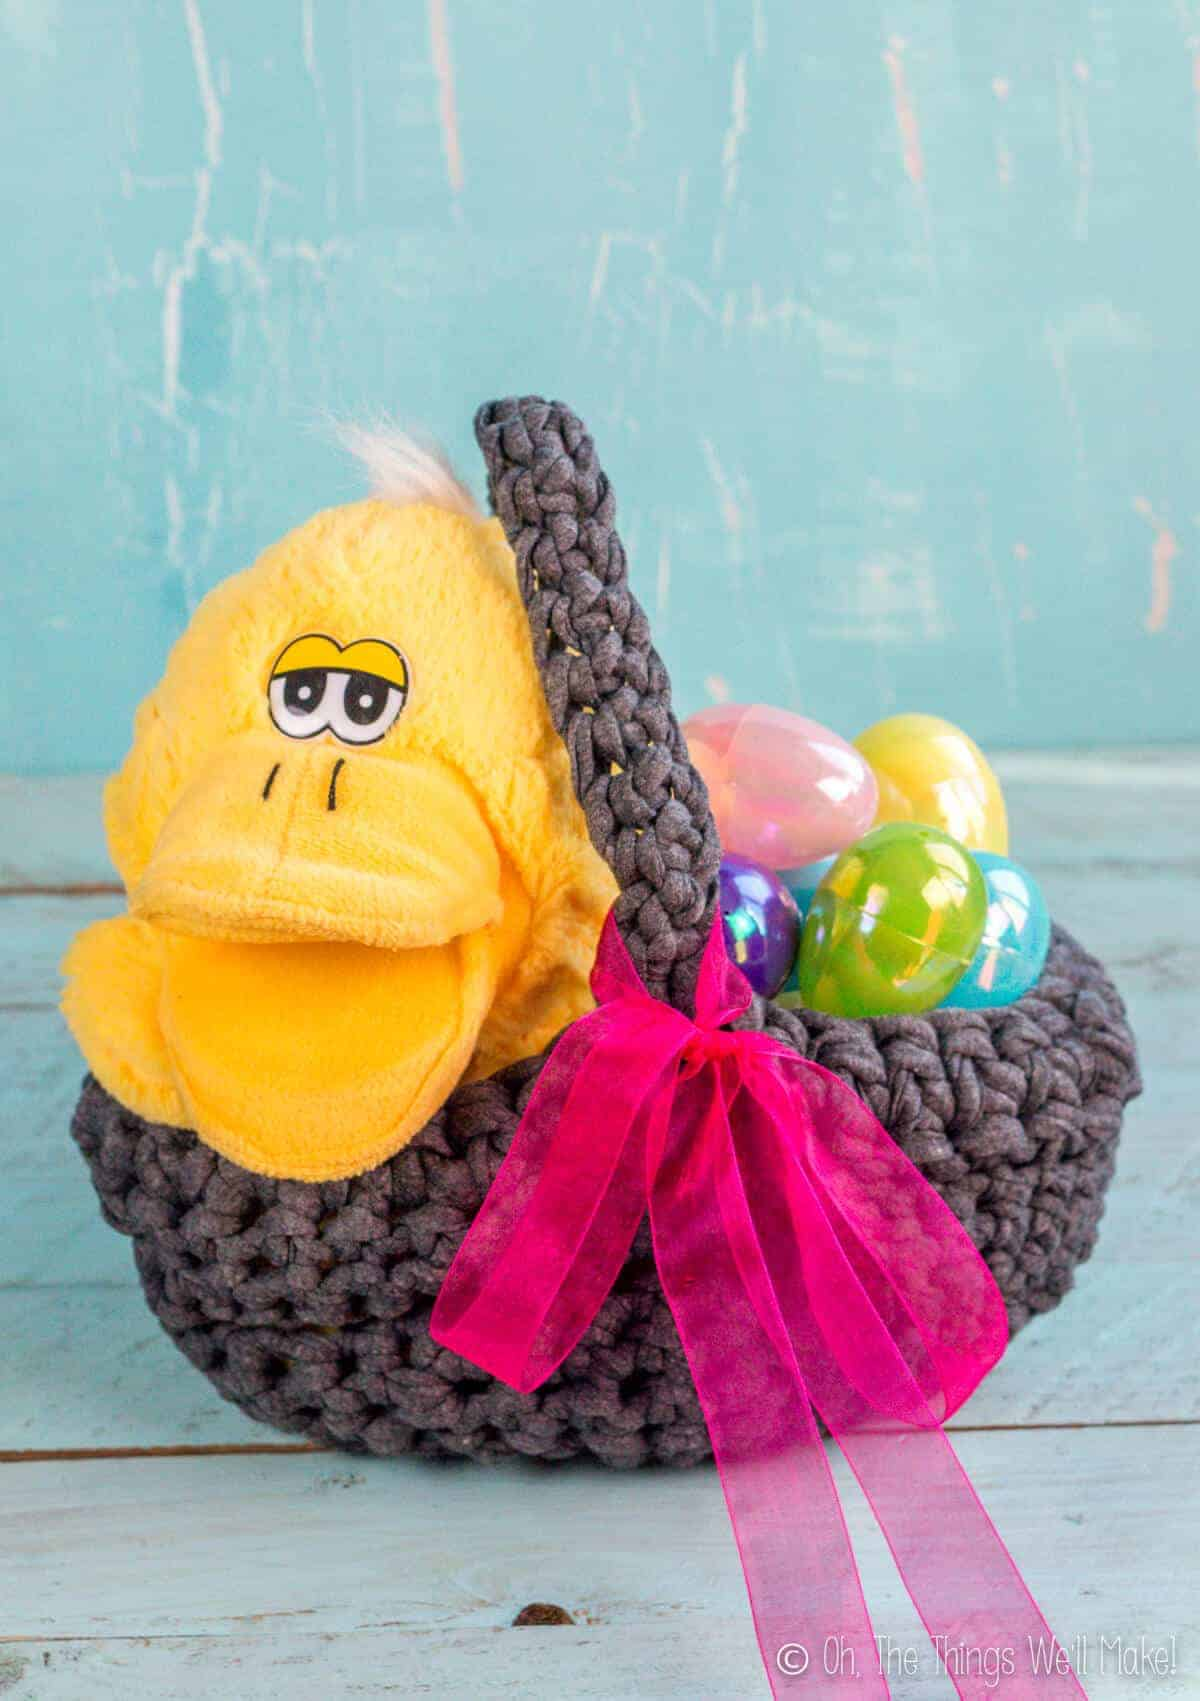 A homemade crochet Easter basket made from t-shirt yarn filled with a duck stuffed animal and plastic Easter eggs